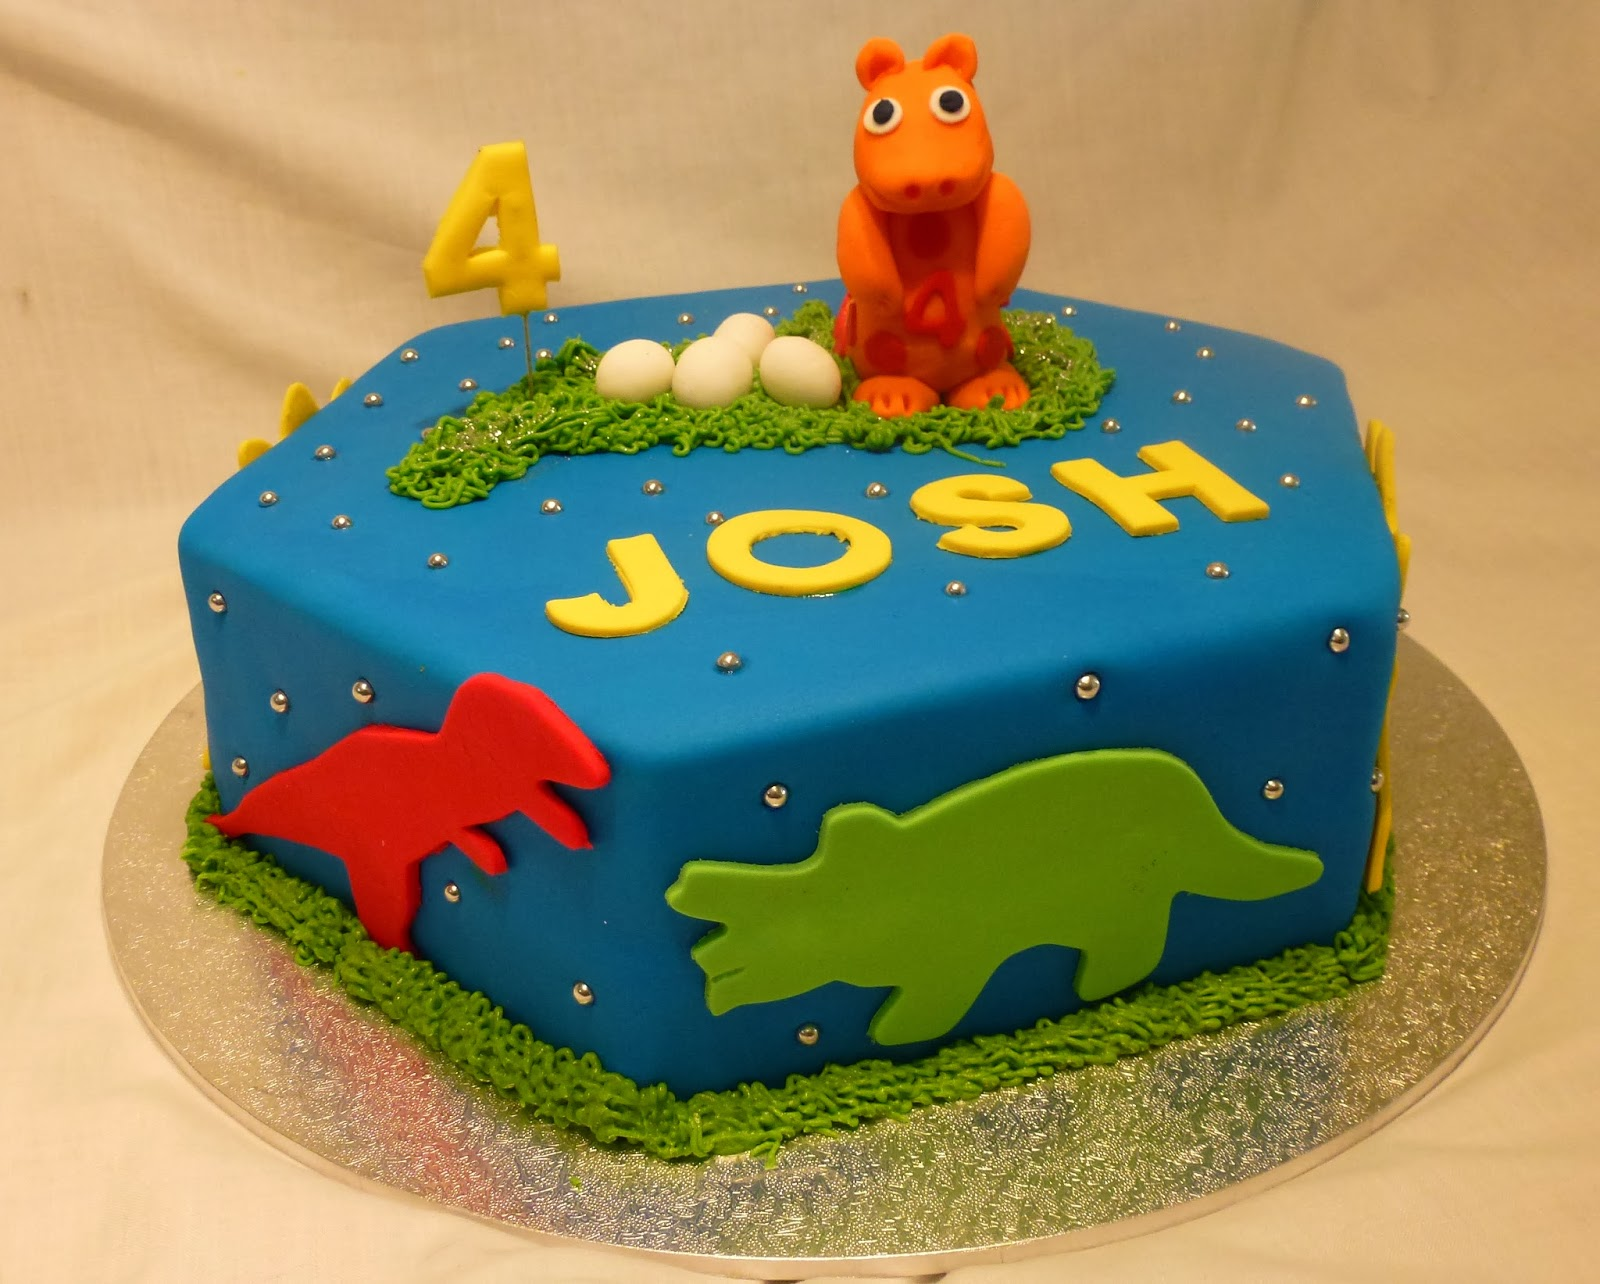 This Cake Celebrates The 4th Birthday Of A Little Boy Who Currently Loves Dinosaurs With Creative Freedom All Aspects I Chose Hexagon